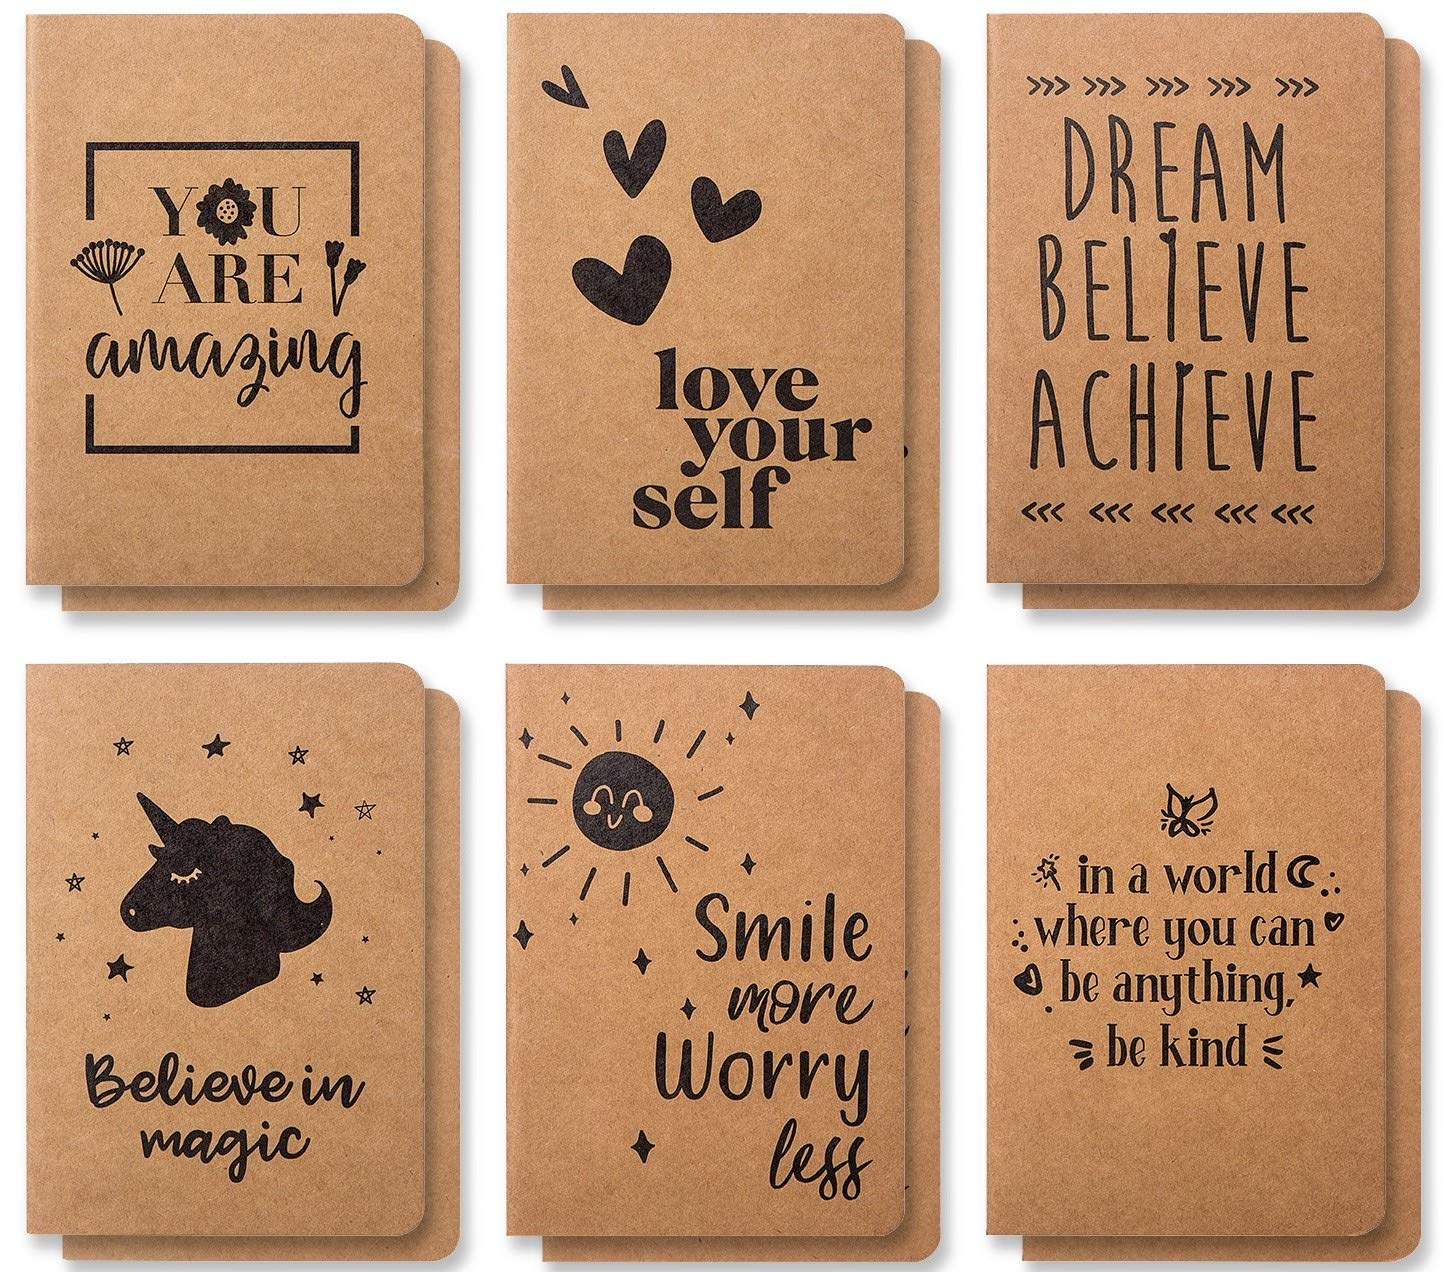 Cute Small Notebooks - 12 Pack Lined Notebook - Kraft Notebook - Pocket Journal - Beautiful Small Notebooks With 6 Joyful Designs - Small Writing Notebooks, A6 Notebook - 80 Pages - 4.1 x 5.8 Inches by Bargain Paradise